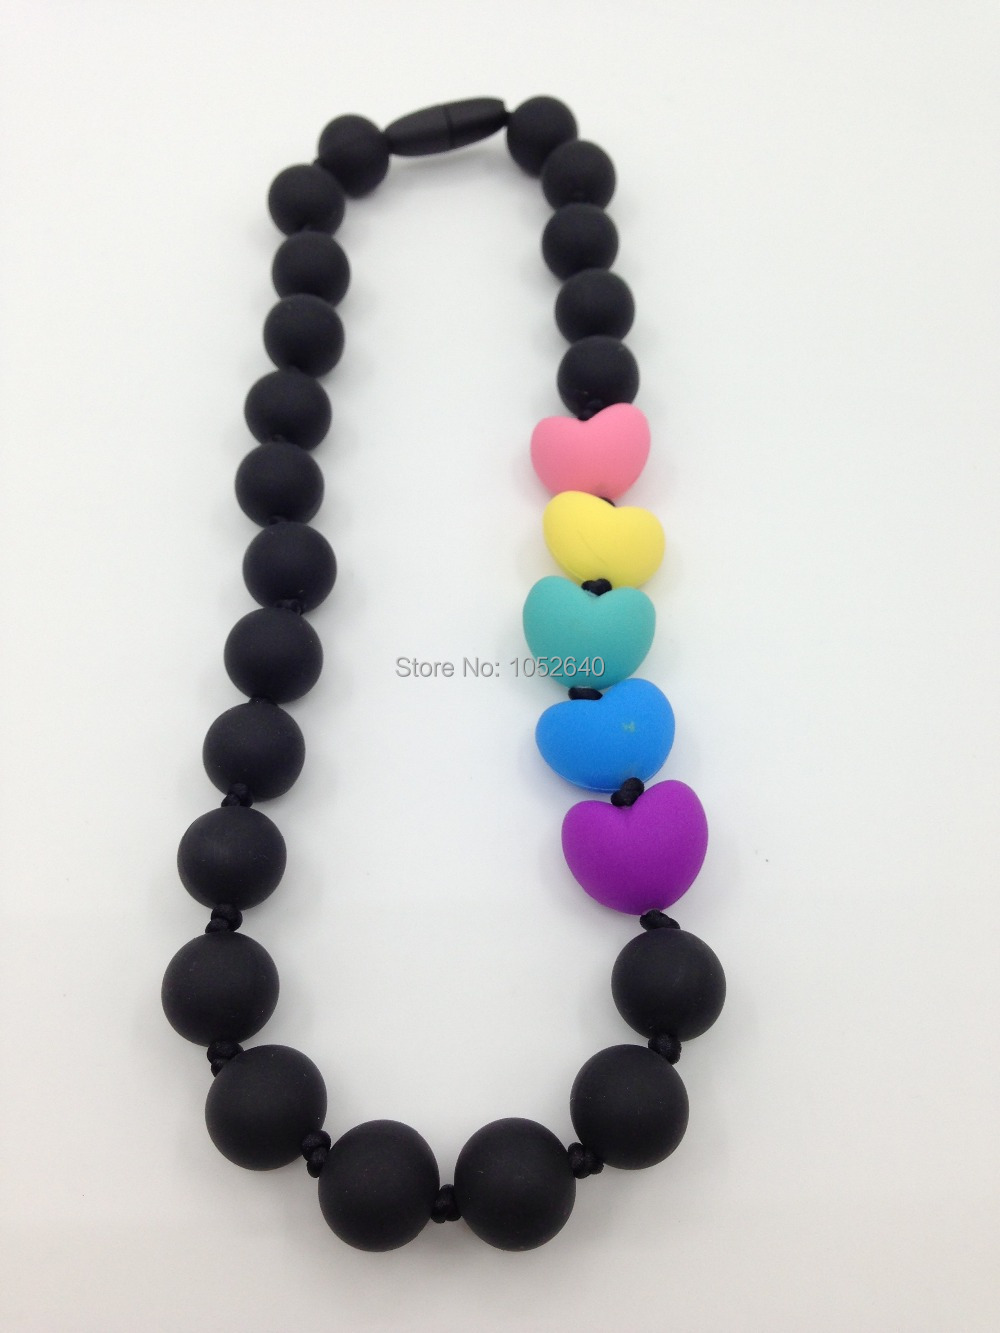 neon pendants katsuragi beads genesis necklaces evangelion cross for pendant in wholesale from and eva men necklace item cosplay jewelry chain misato